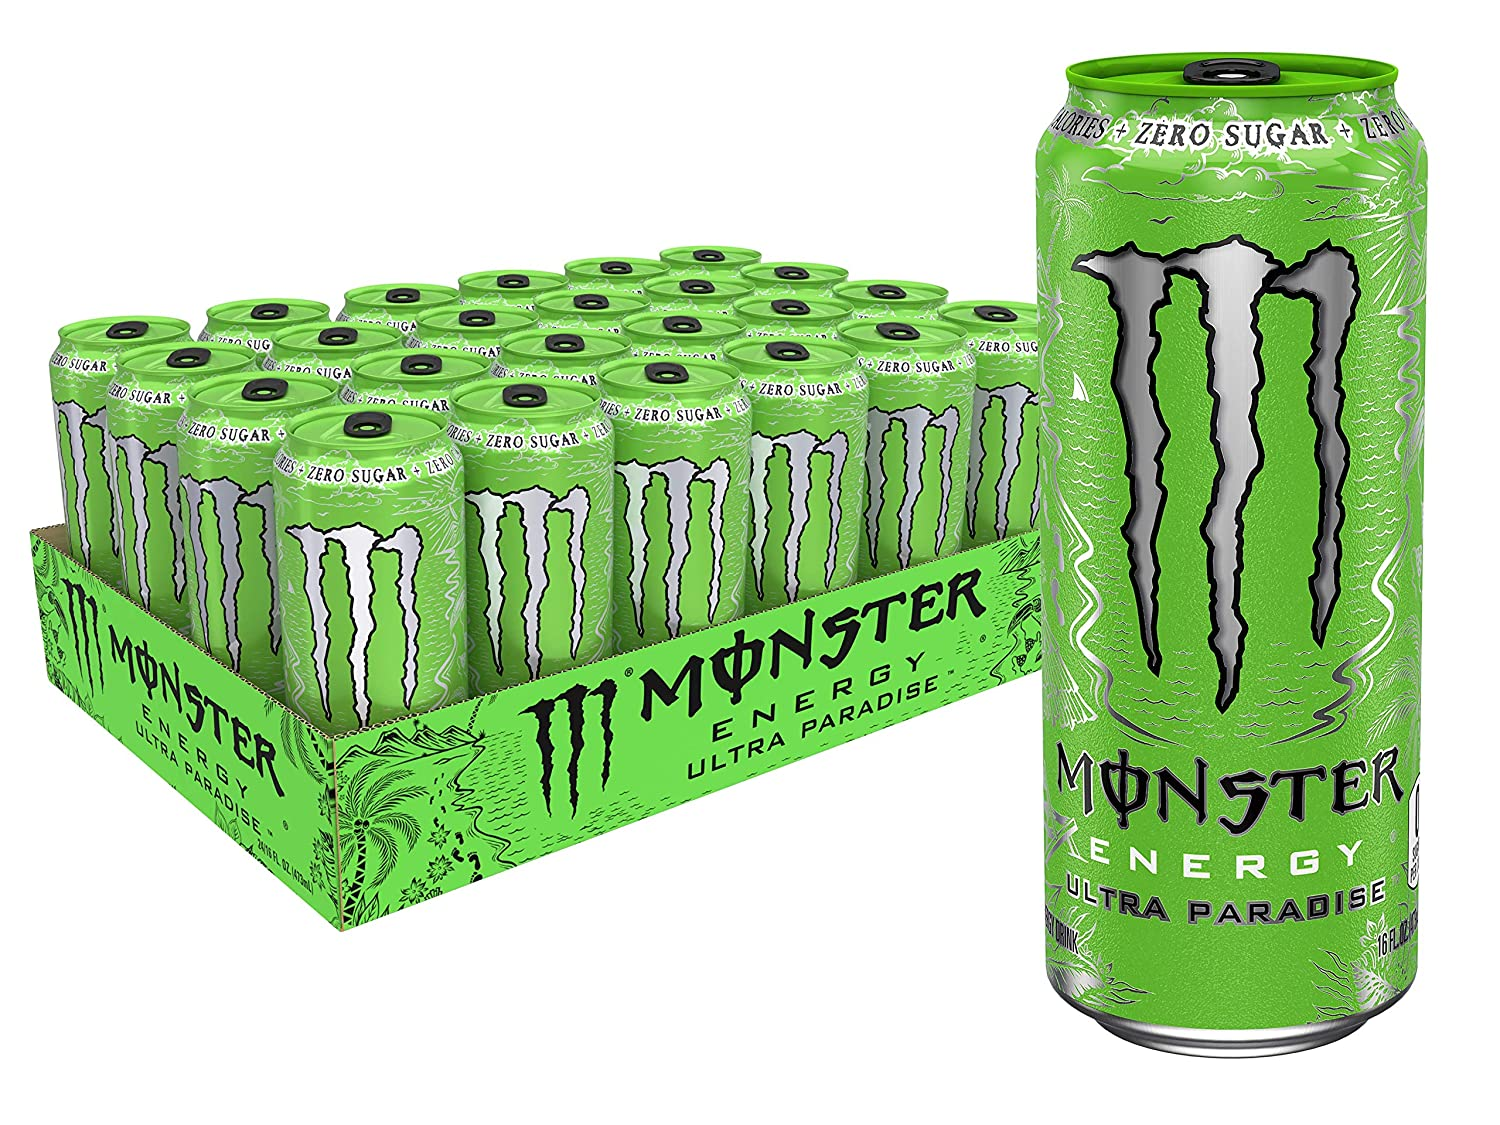 Ultra Paradise, Sugar Free Energy Drink, 16 oz (Pack of 24)